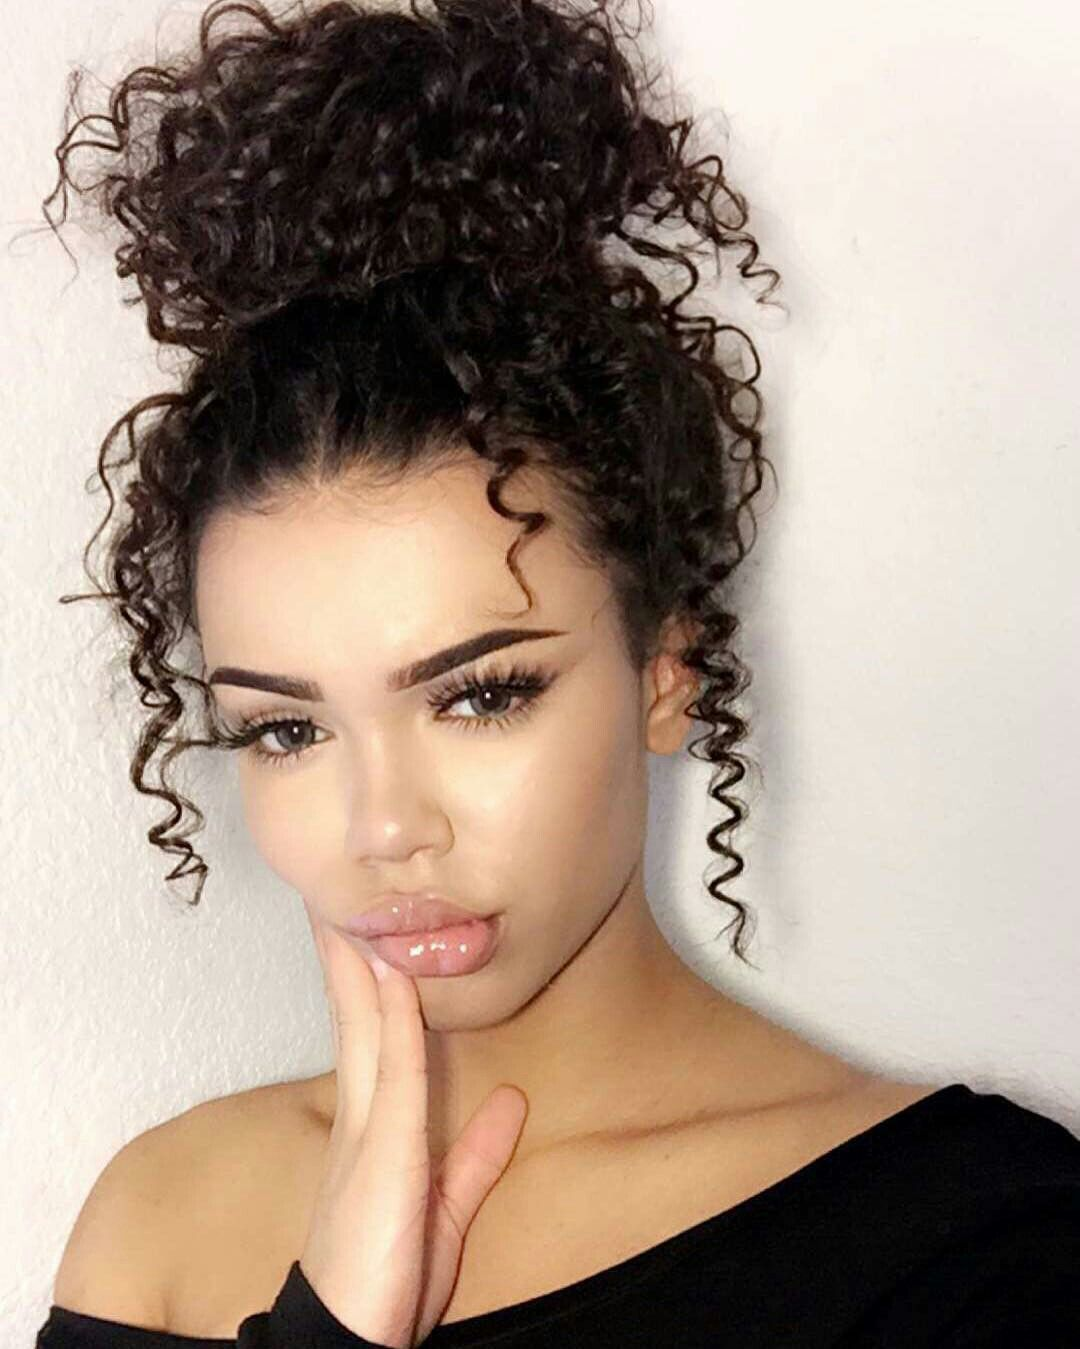 Pin By Sol Rodrguez On Talia Love Pinterest Curly Makeup And